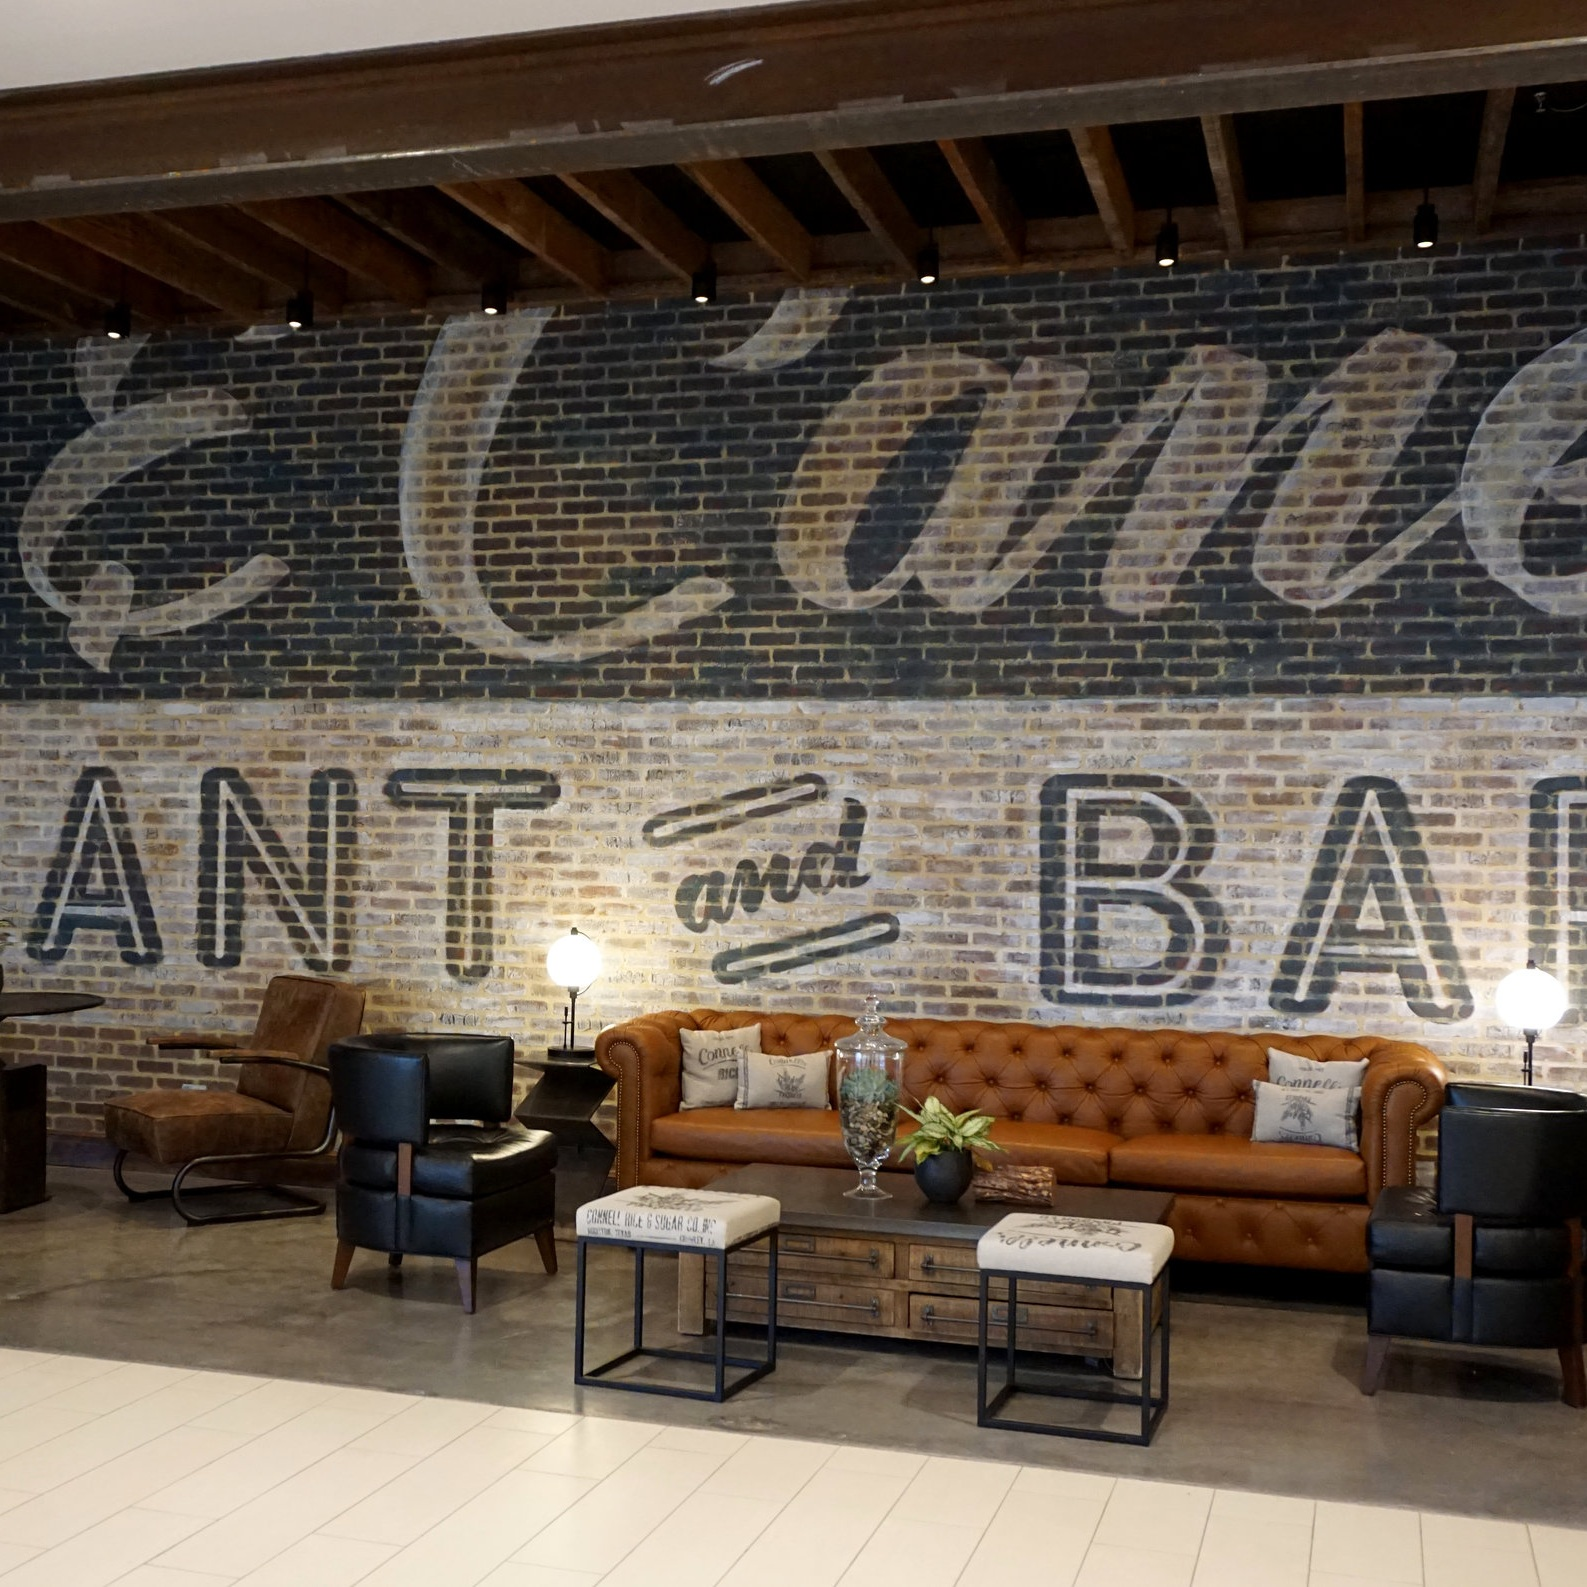 Grain & Cane   Sign Design, Sign Fabrication, Illustration, Handpainting, Mural Painting, Large Format Painting